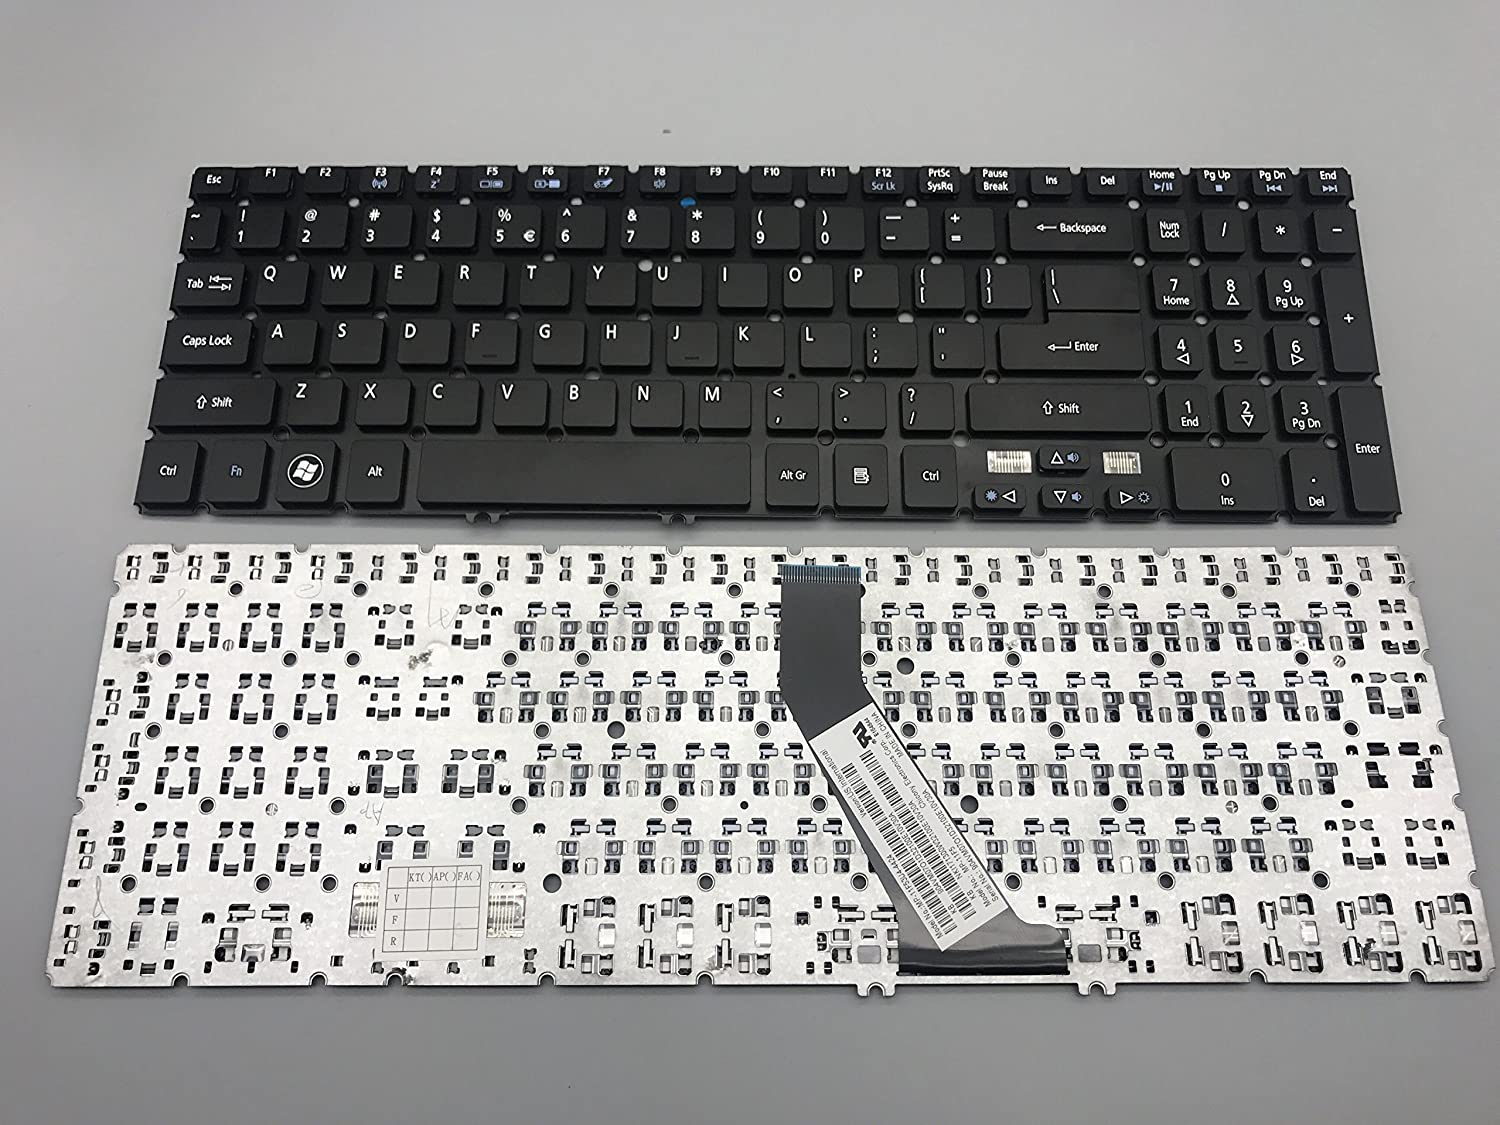 New Keyboard for Acer Aspire V5 V5-531 V5-571 V5-571P V5-531 V5-571 V5-551G V5-571G V5-571PG M5-581G M5-581T M5-581TG Series US Layout P/N: MP-11F53U4-4424 Black